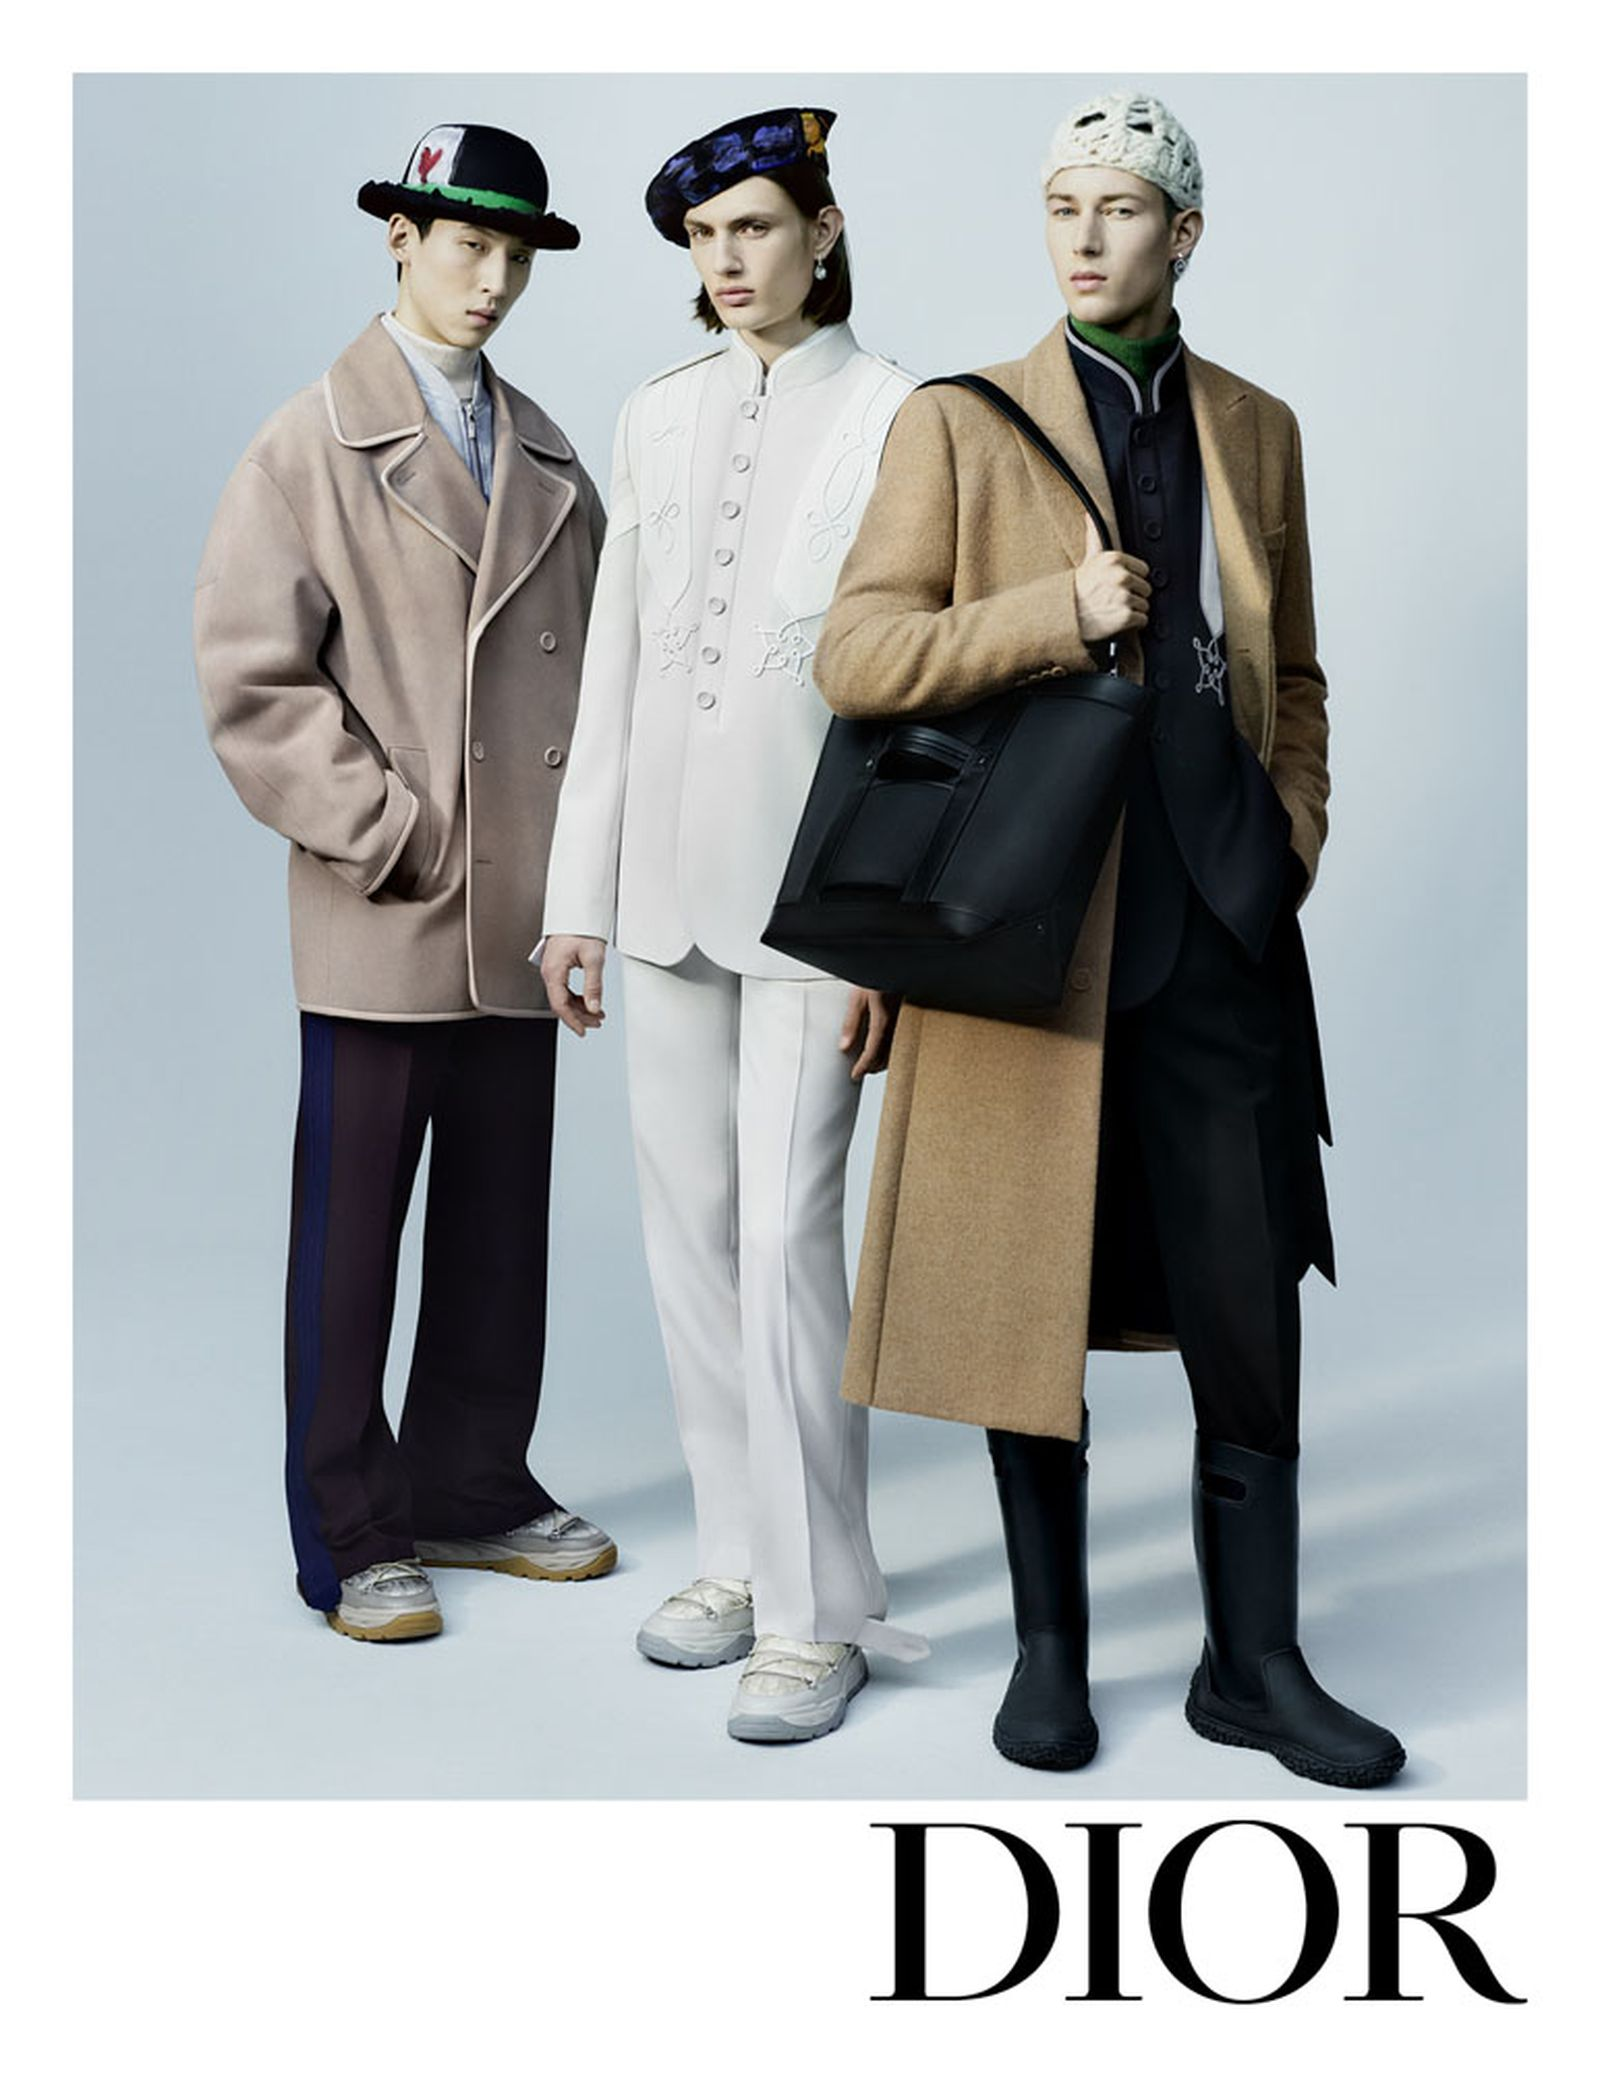 dior-mens-winter-2021-campain-peter-doig-collaboration-05